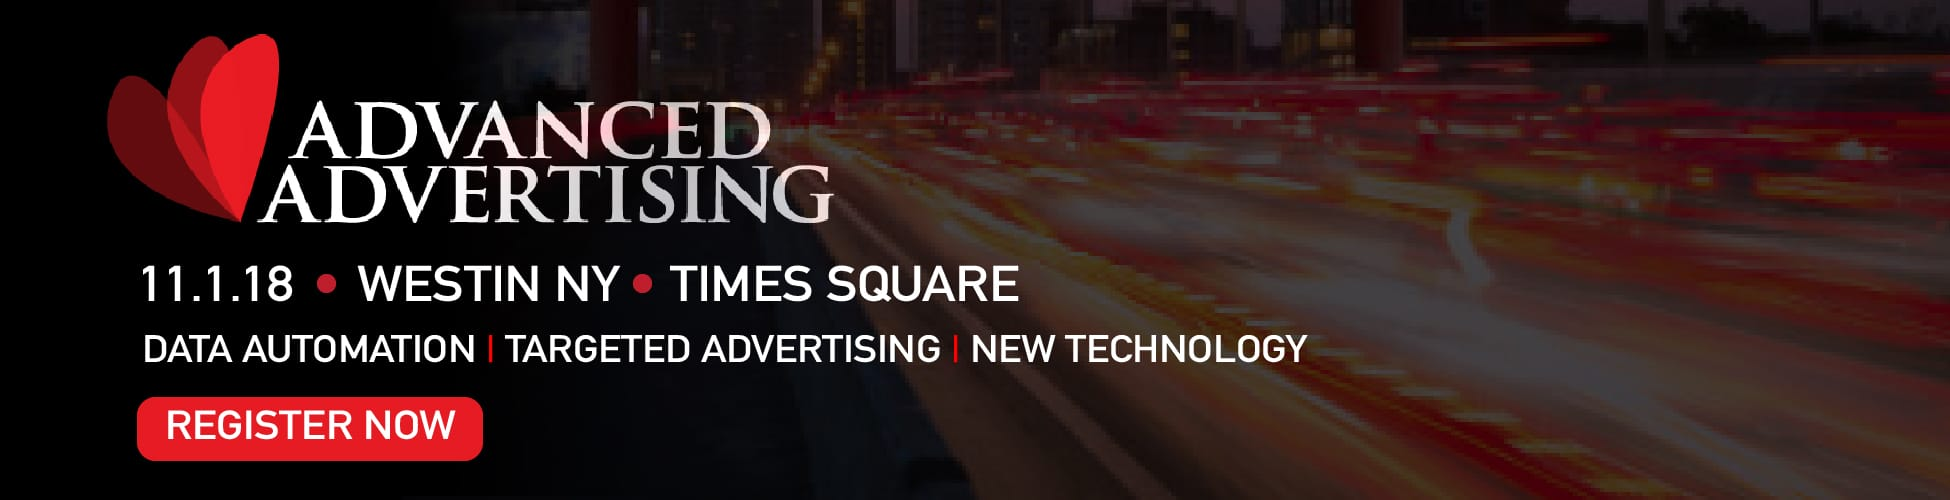 Advanced Advertising: Register Now